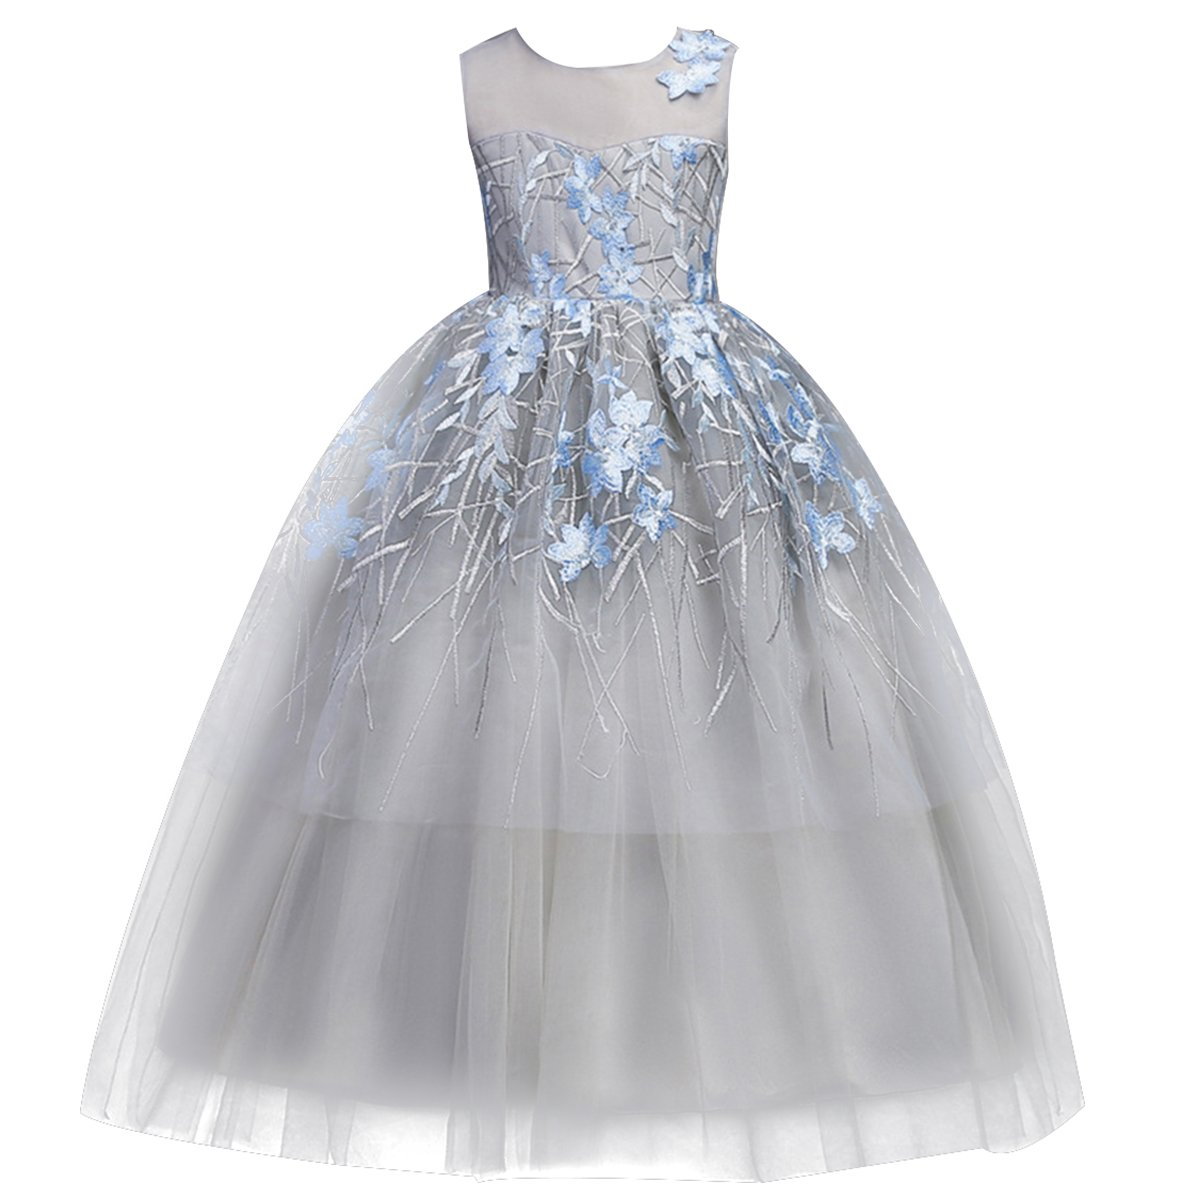 b5a94346288 Amazon.com  Kids Flower Pageant Tutu Tulle Wedding Princess Long Gray Dress  for Girl Ruffles Vintage Embroidered Gown  Clothing